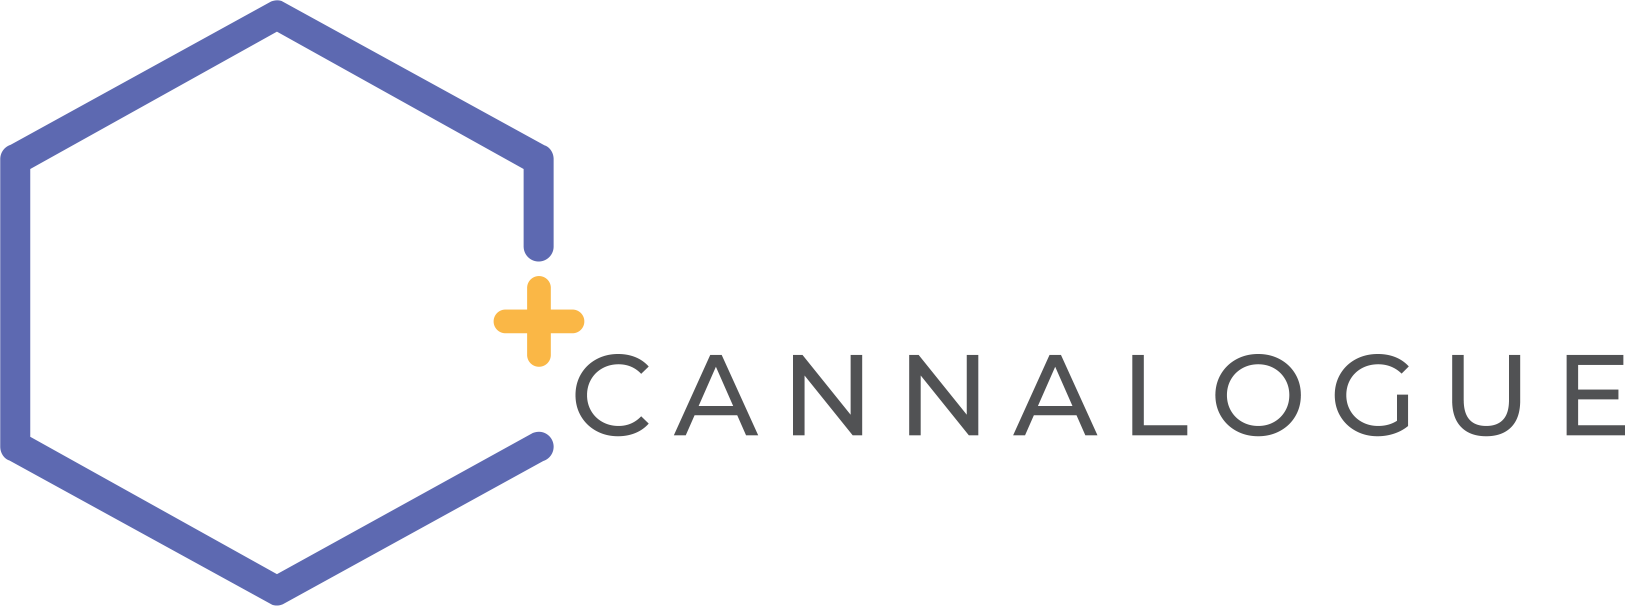 Cannalogue Launches New Medical Cannabis Referral Pathway for Doctors and Medical Professionals